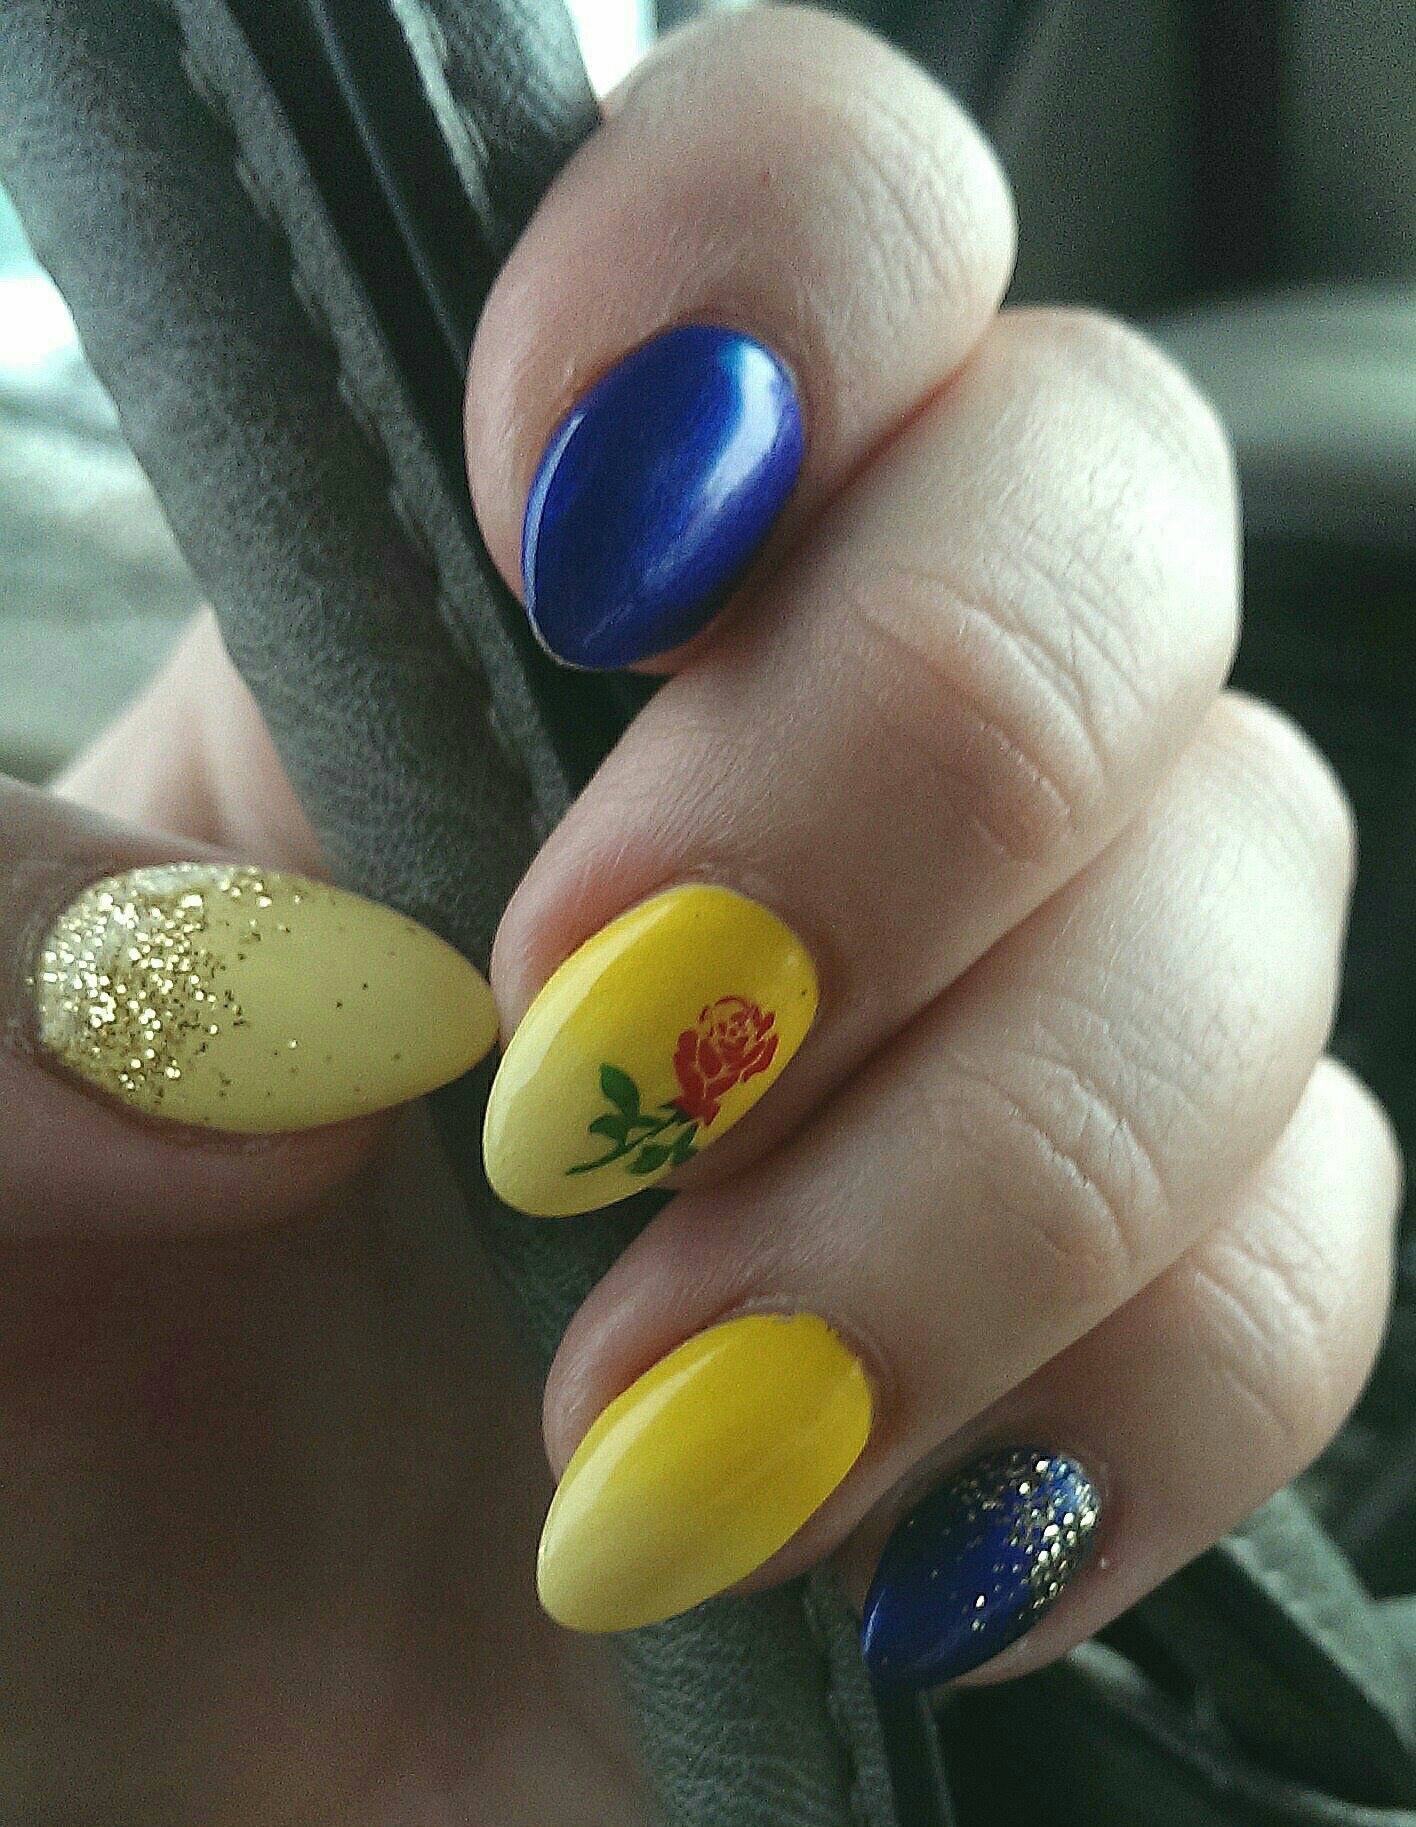 Beauty and the Beast subtle nails - Beauty | Pinterest - Disney ...